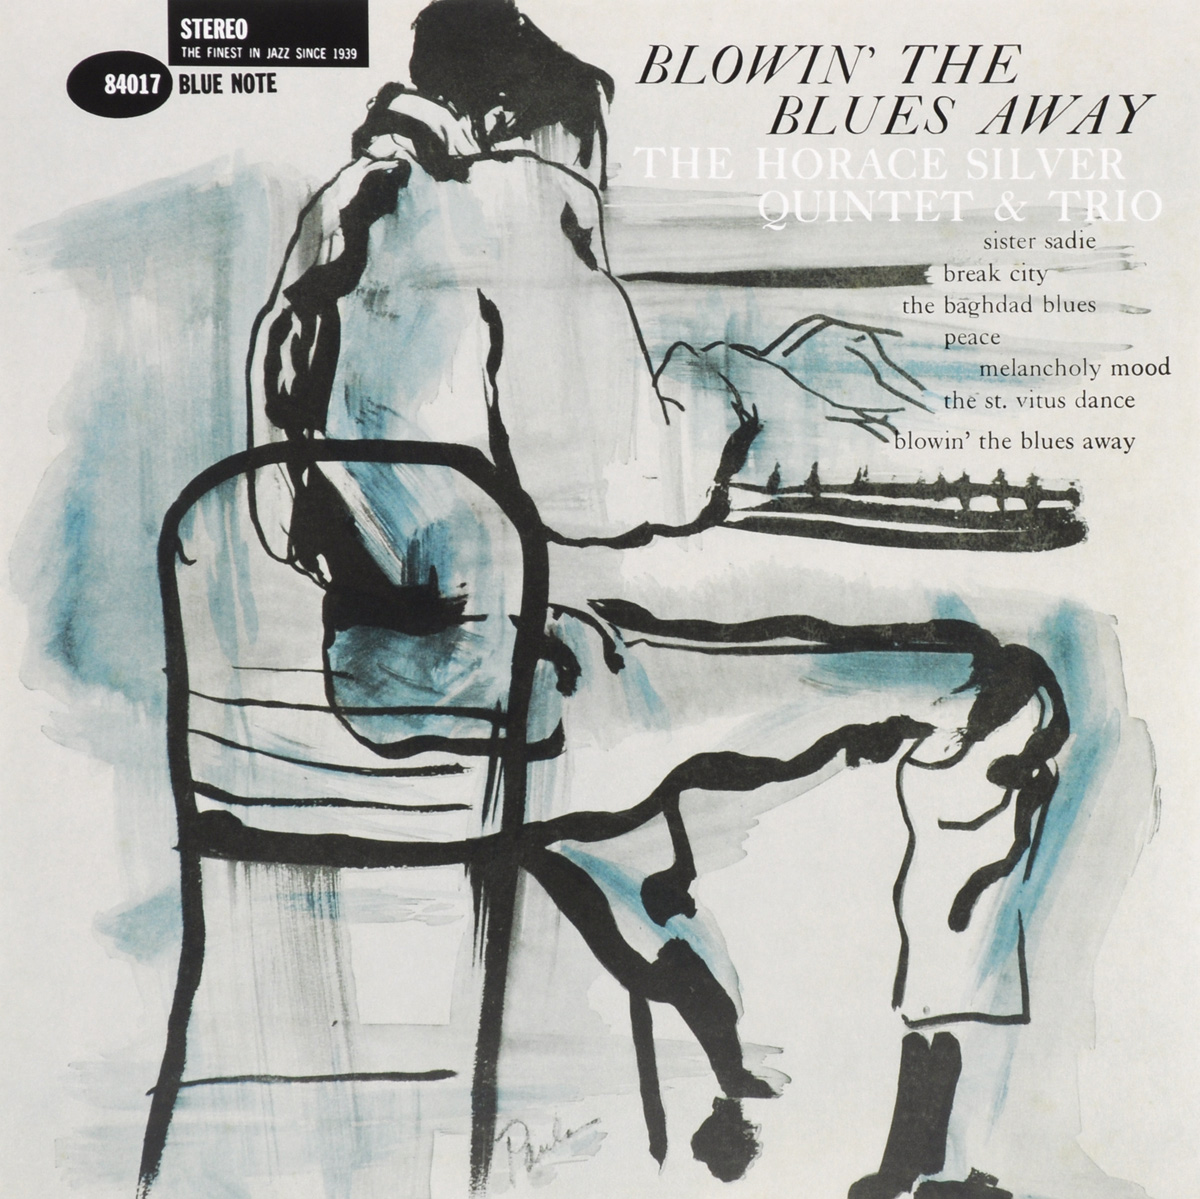 The Horace Silver Quintet Horace Silver Quintet & Trio. Blowin' The Blues Away (LP) the andrzej trzaskowski quintet polish jazz the andrzej trzaskowski quintet lp